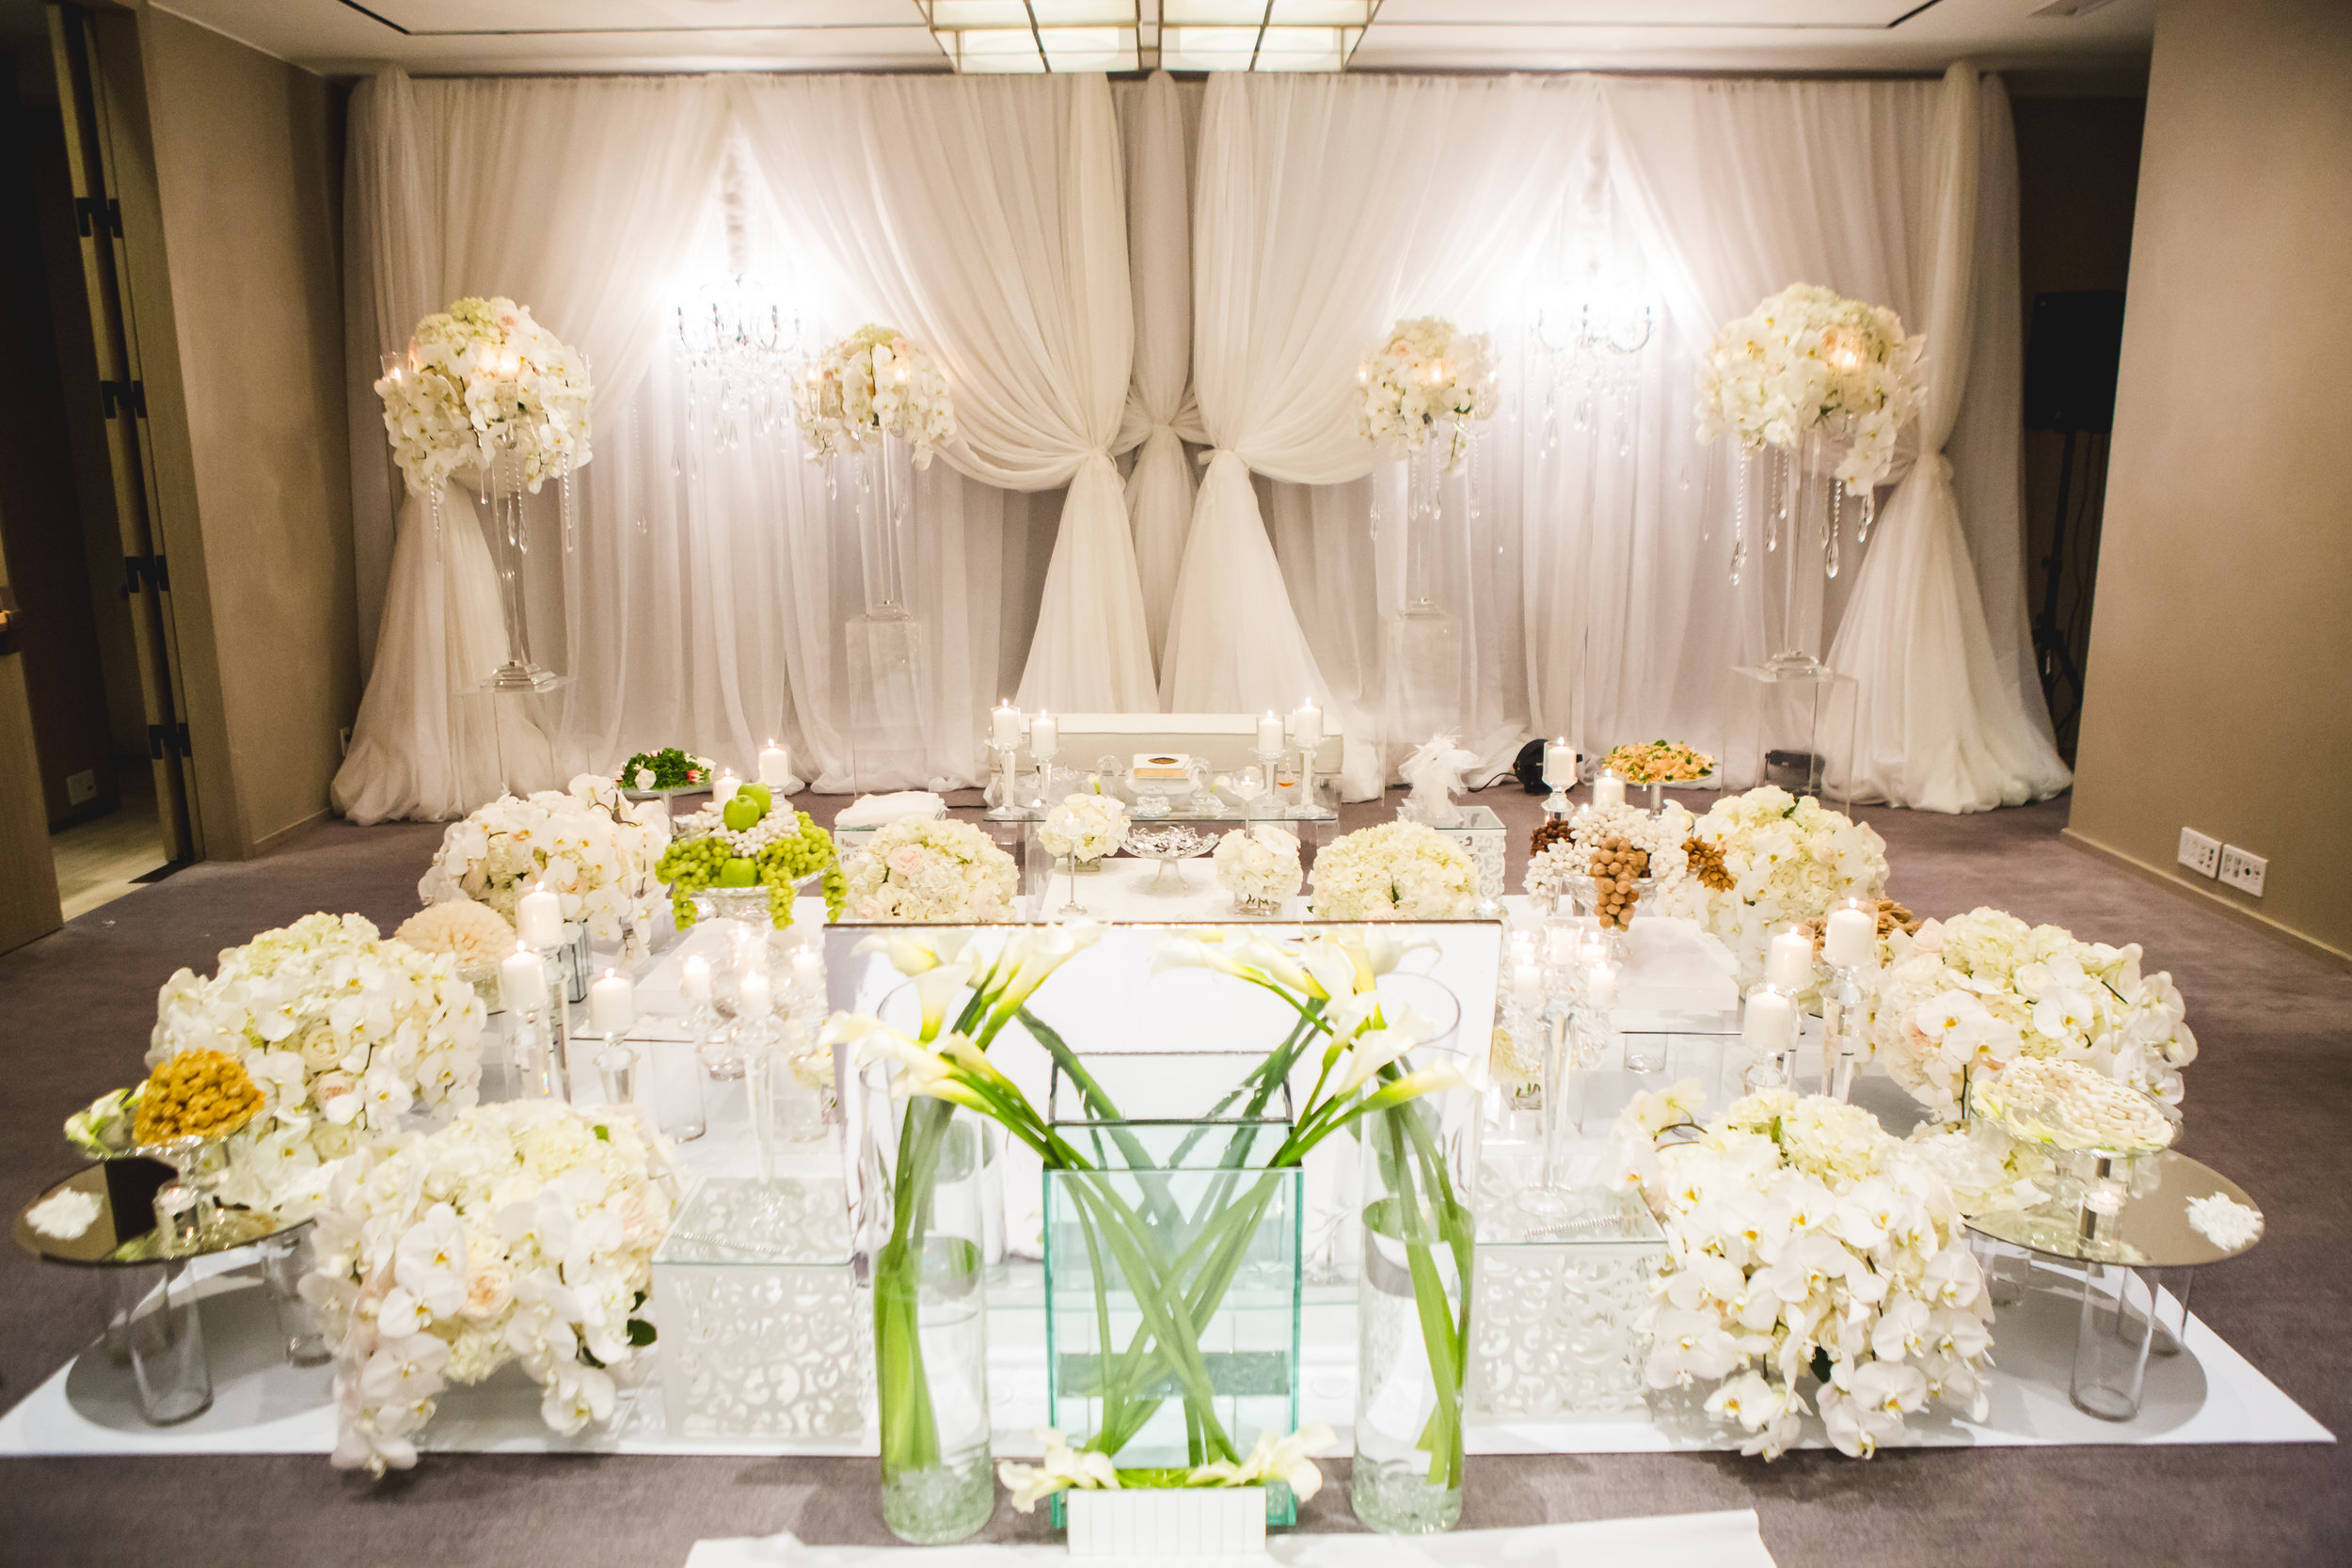 Crystal Sofreh set up in Four Seasons Hotel in Toronto